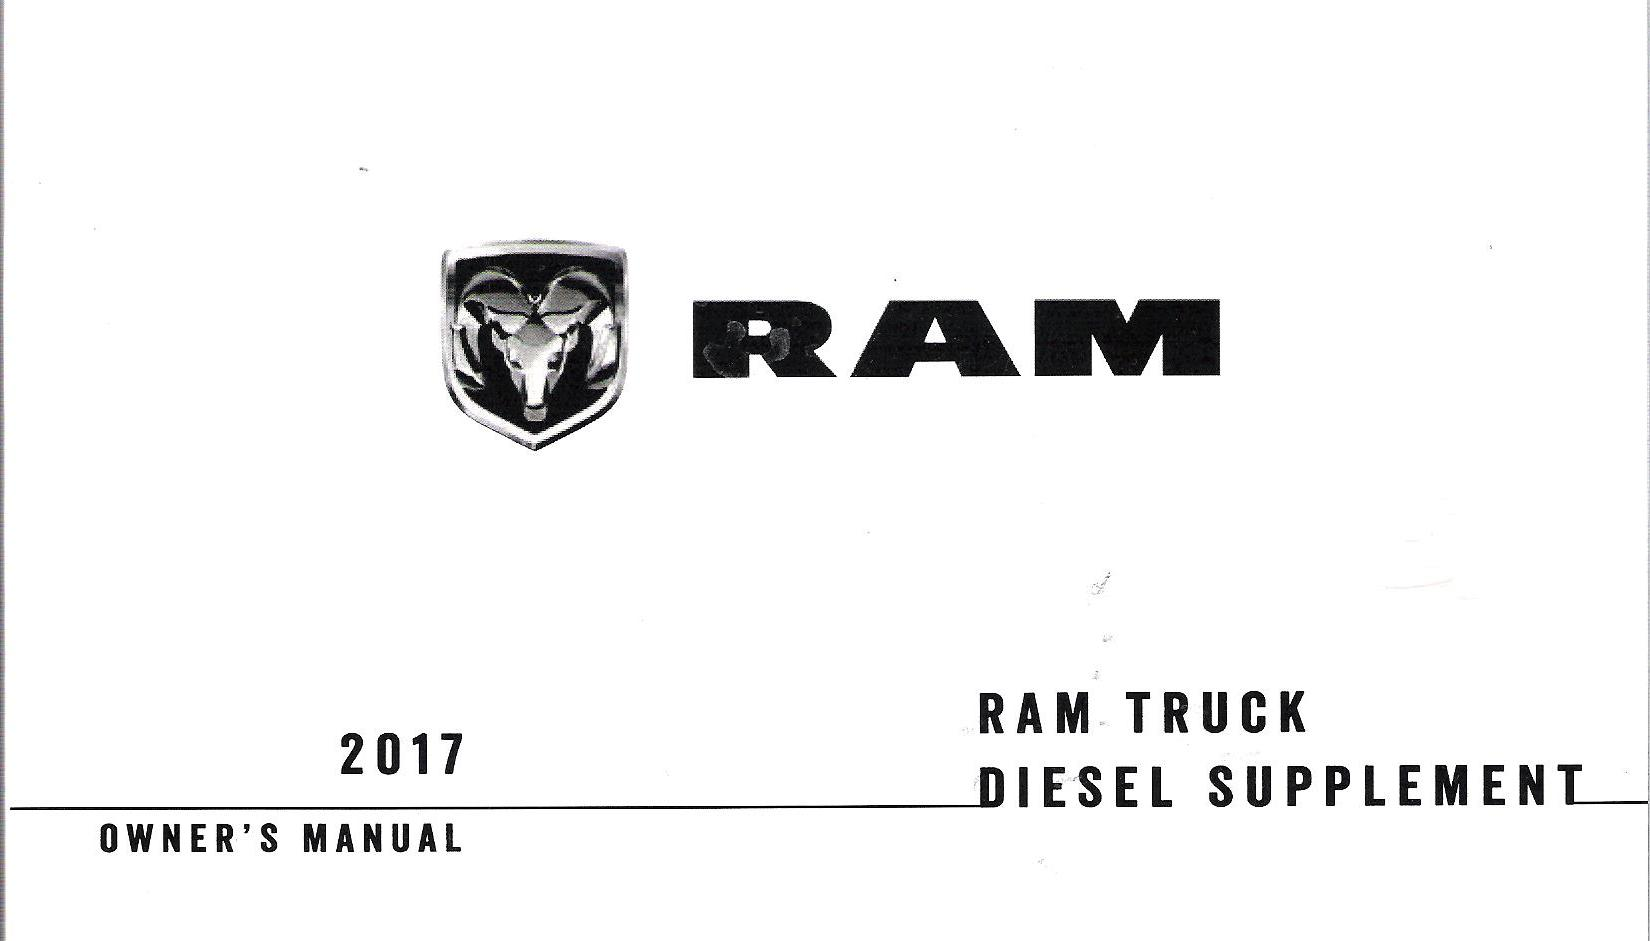 2017 Dodge Ram Truck 1500, 2500, 3500 Owner's Manual